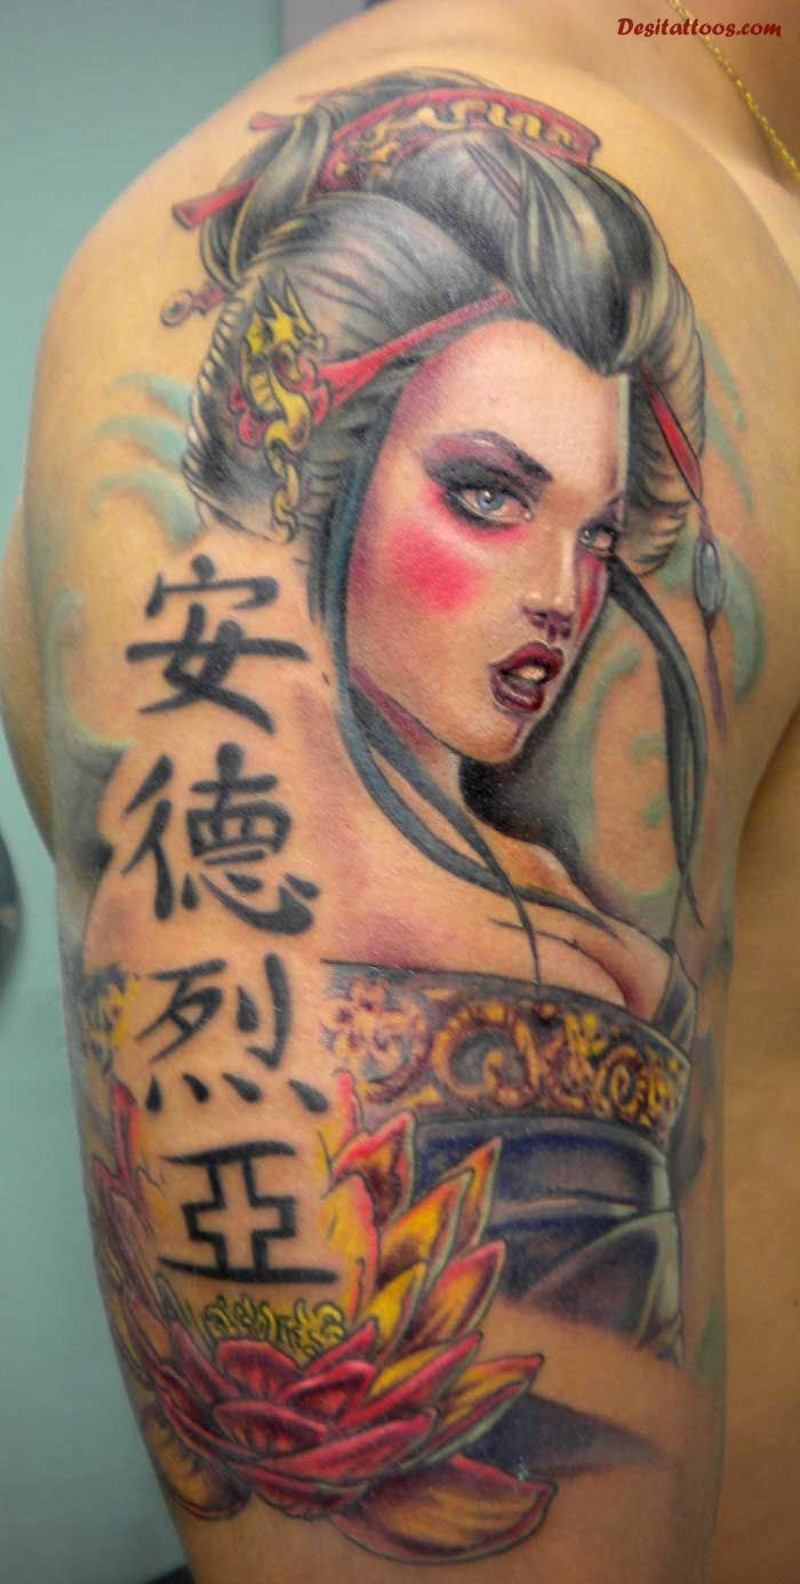 Modern cartoon style colored shoulder tattoo of sexy geisha with lettering